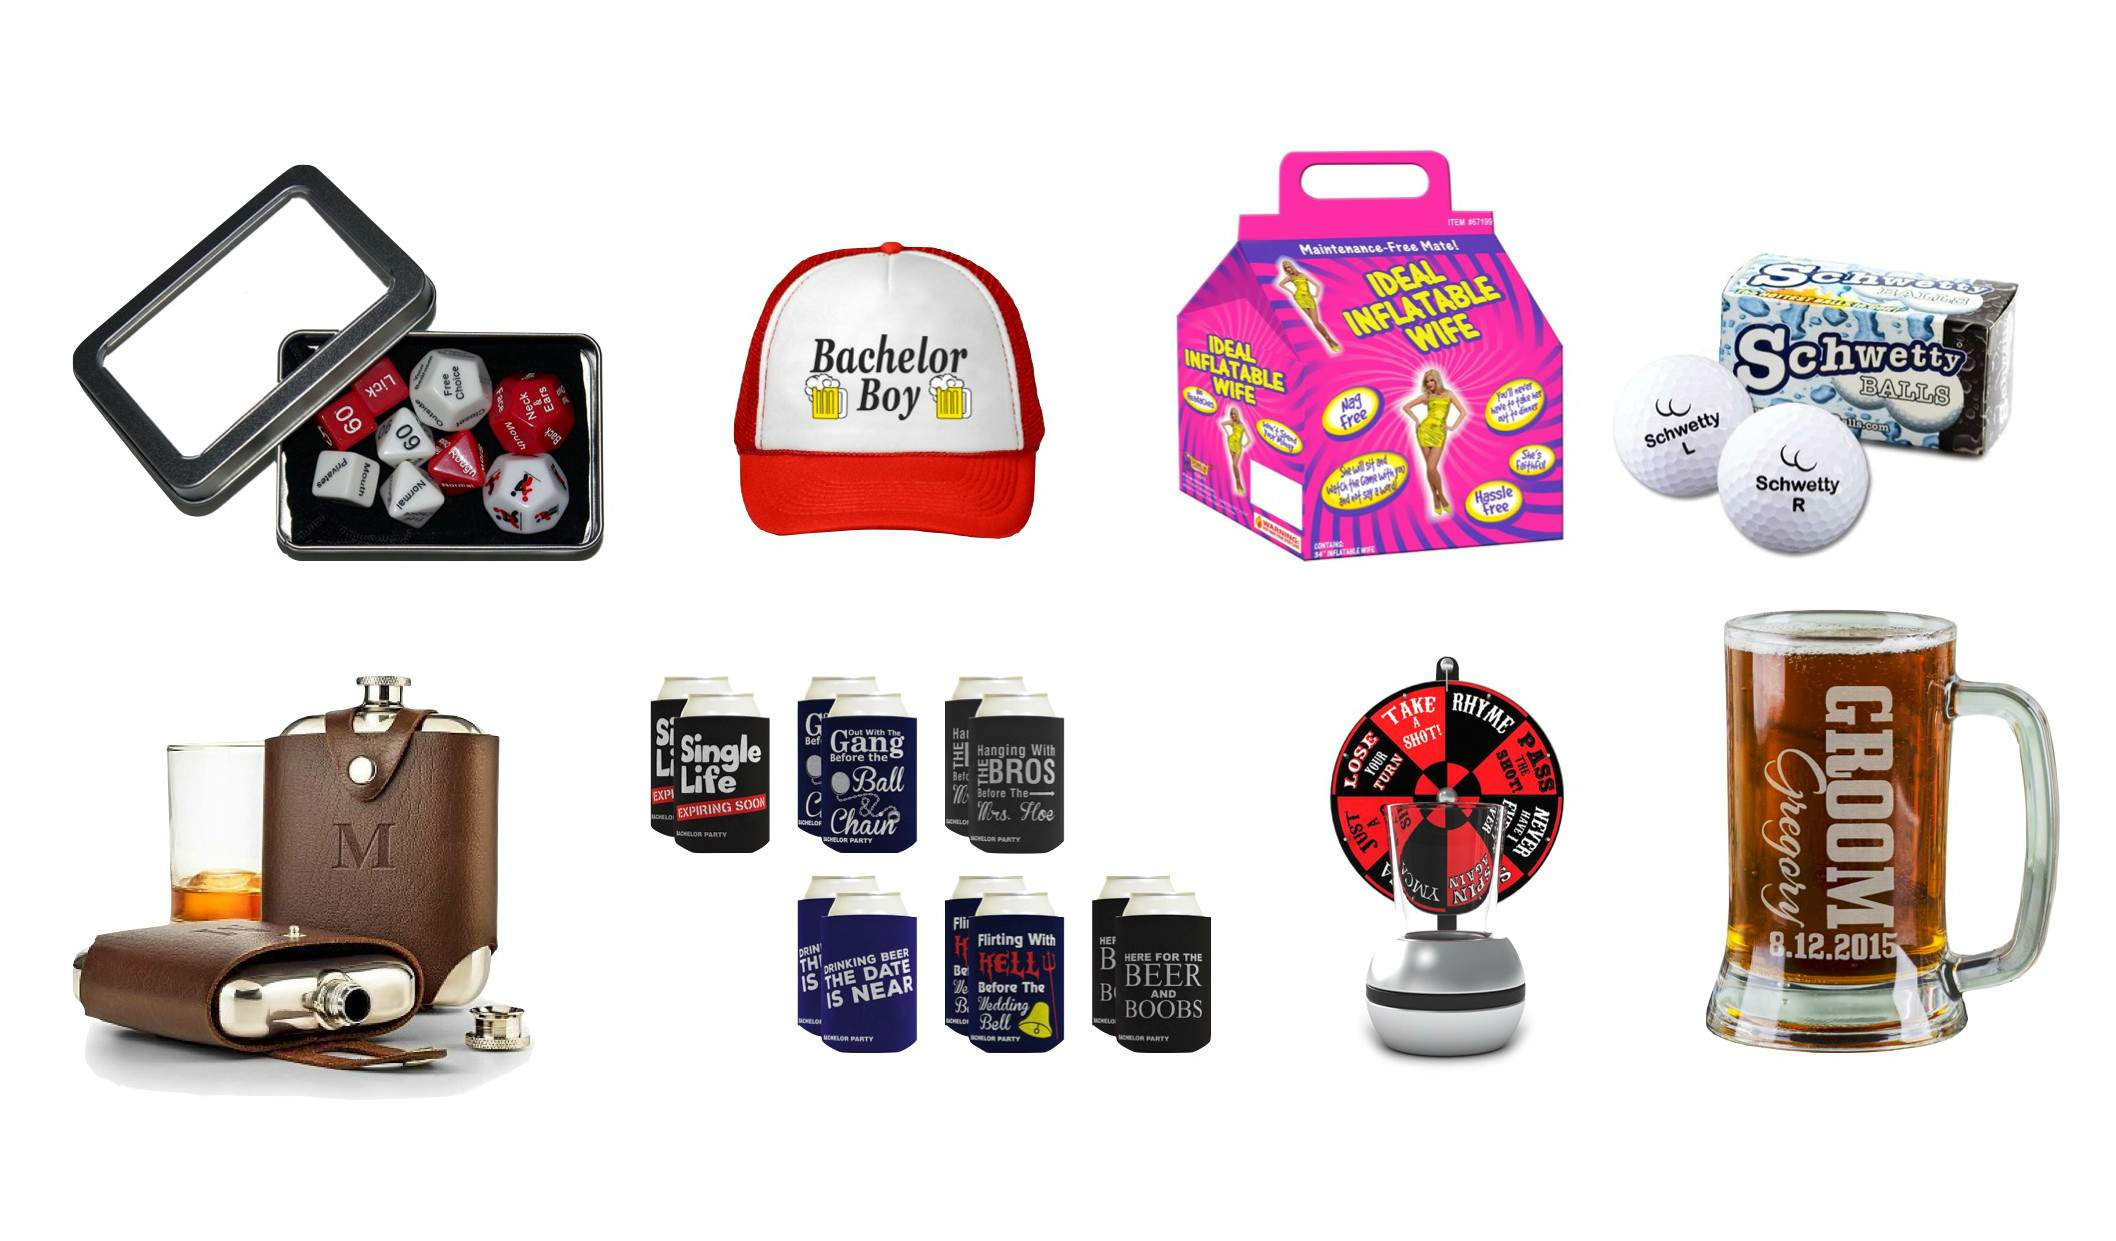 Best ideas about Bachelor Party Gift Ideas . Save or Pin Top 10 Best Bachelor Party Gifts Now.